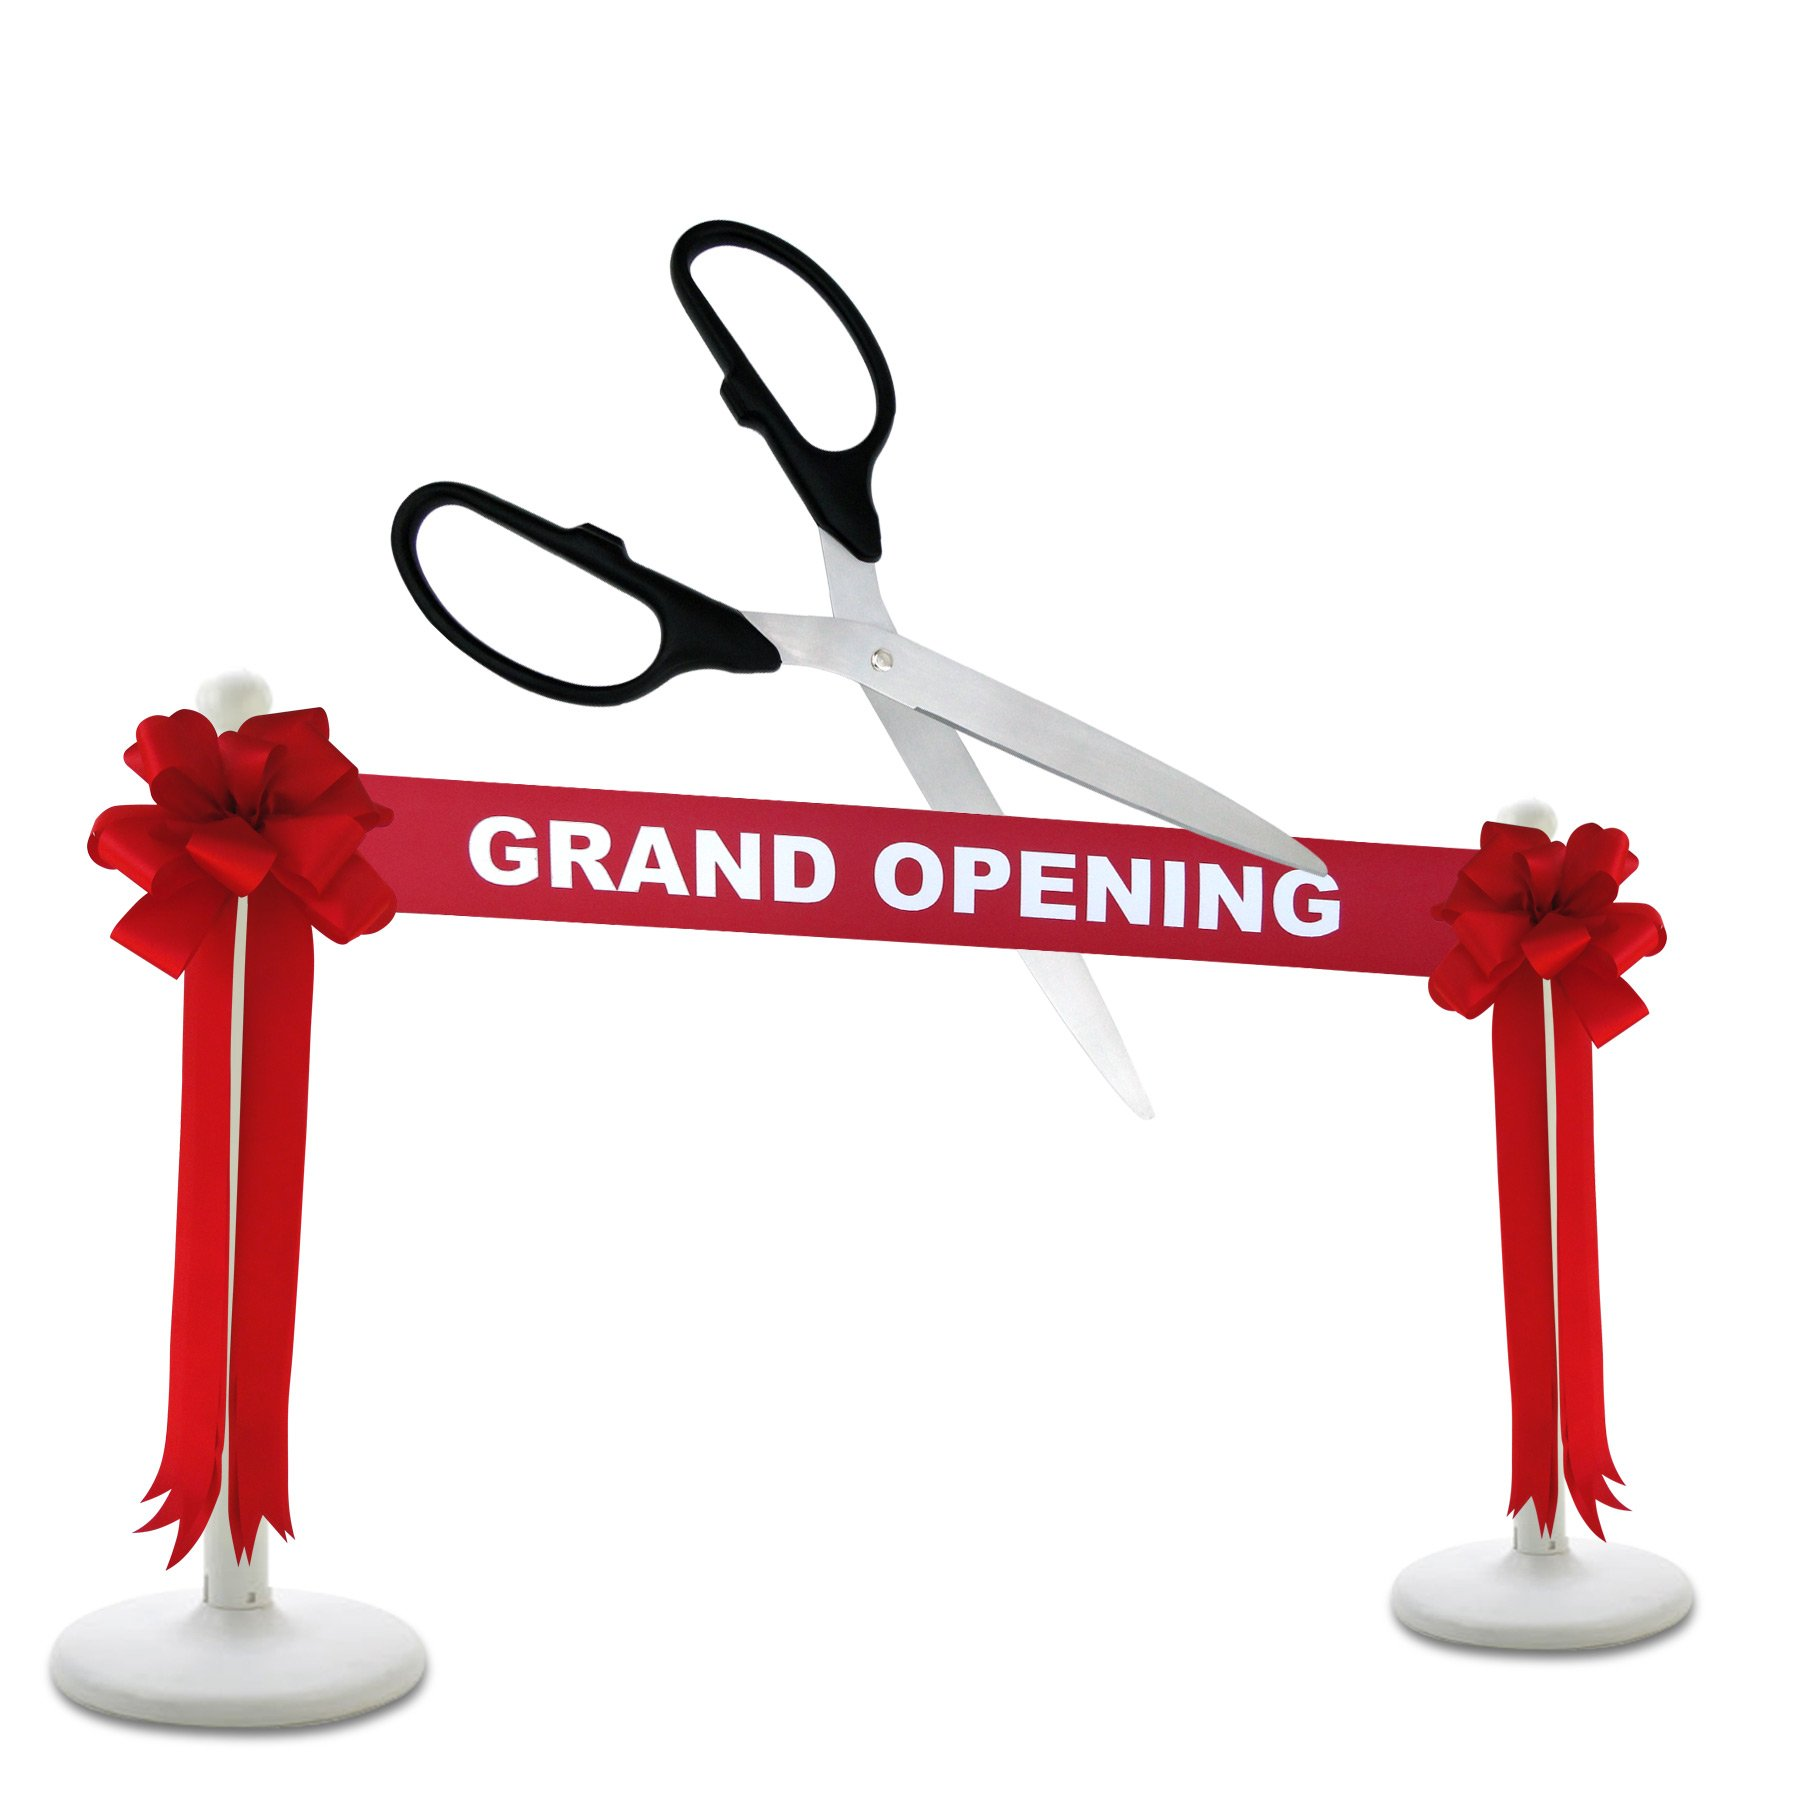 Deluxe Grand Opening Kit - 36'' Black/Silver Ceremonial Ribbon Cutting Scissors with 5 Yards of 6'' Red Grand Opening Ribbon, 2 Red Bows and 2 White Plastic Stanchions